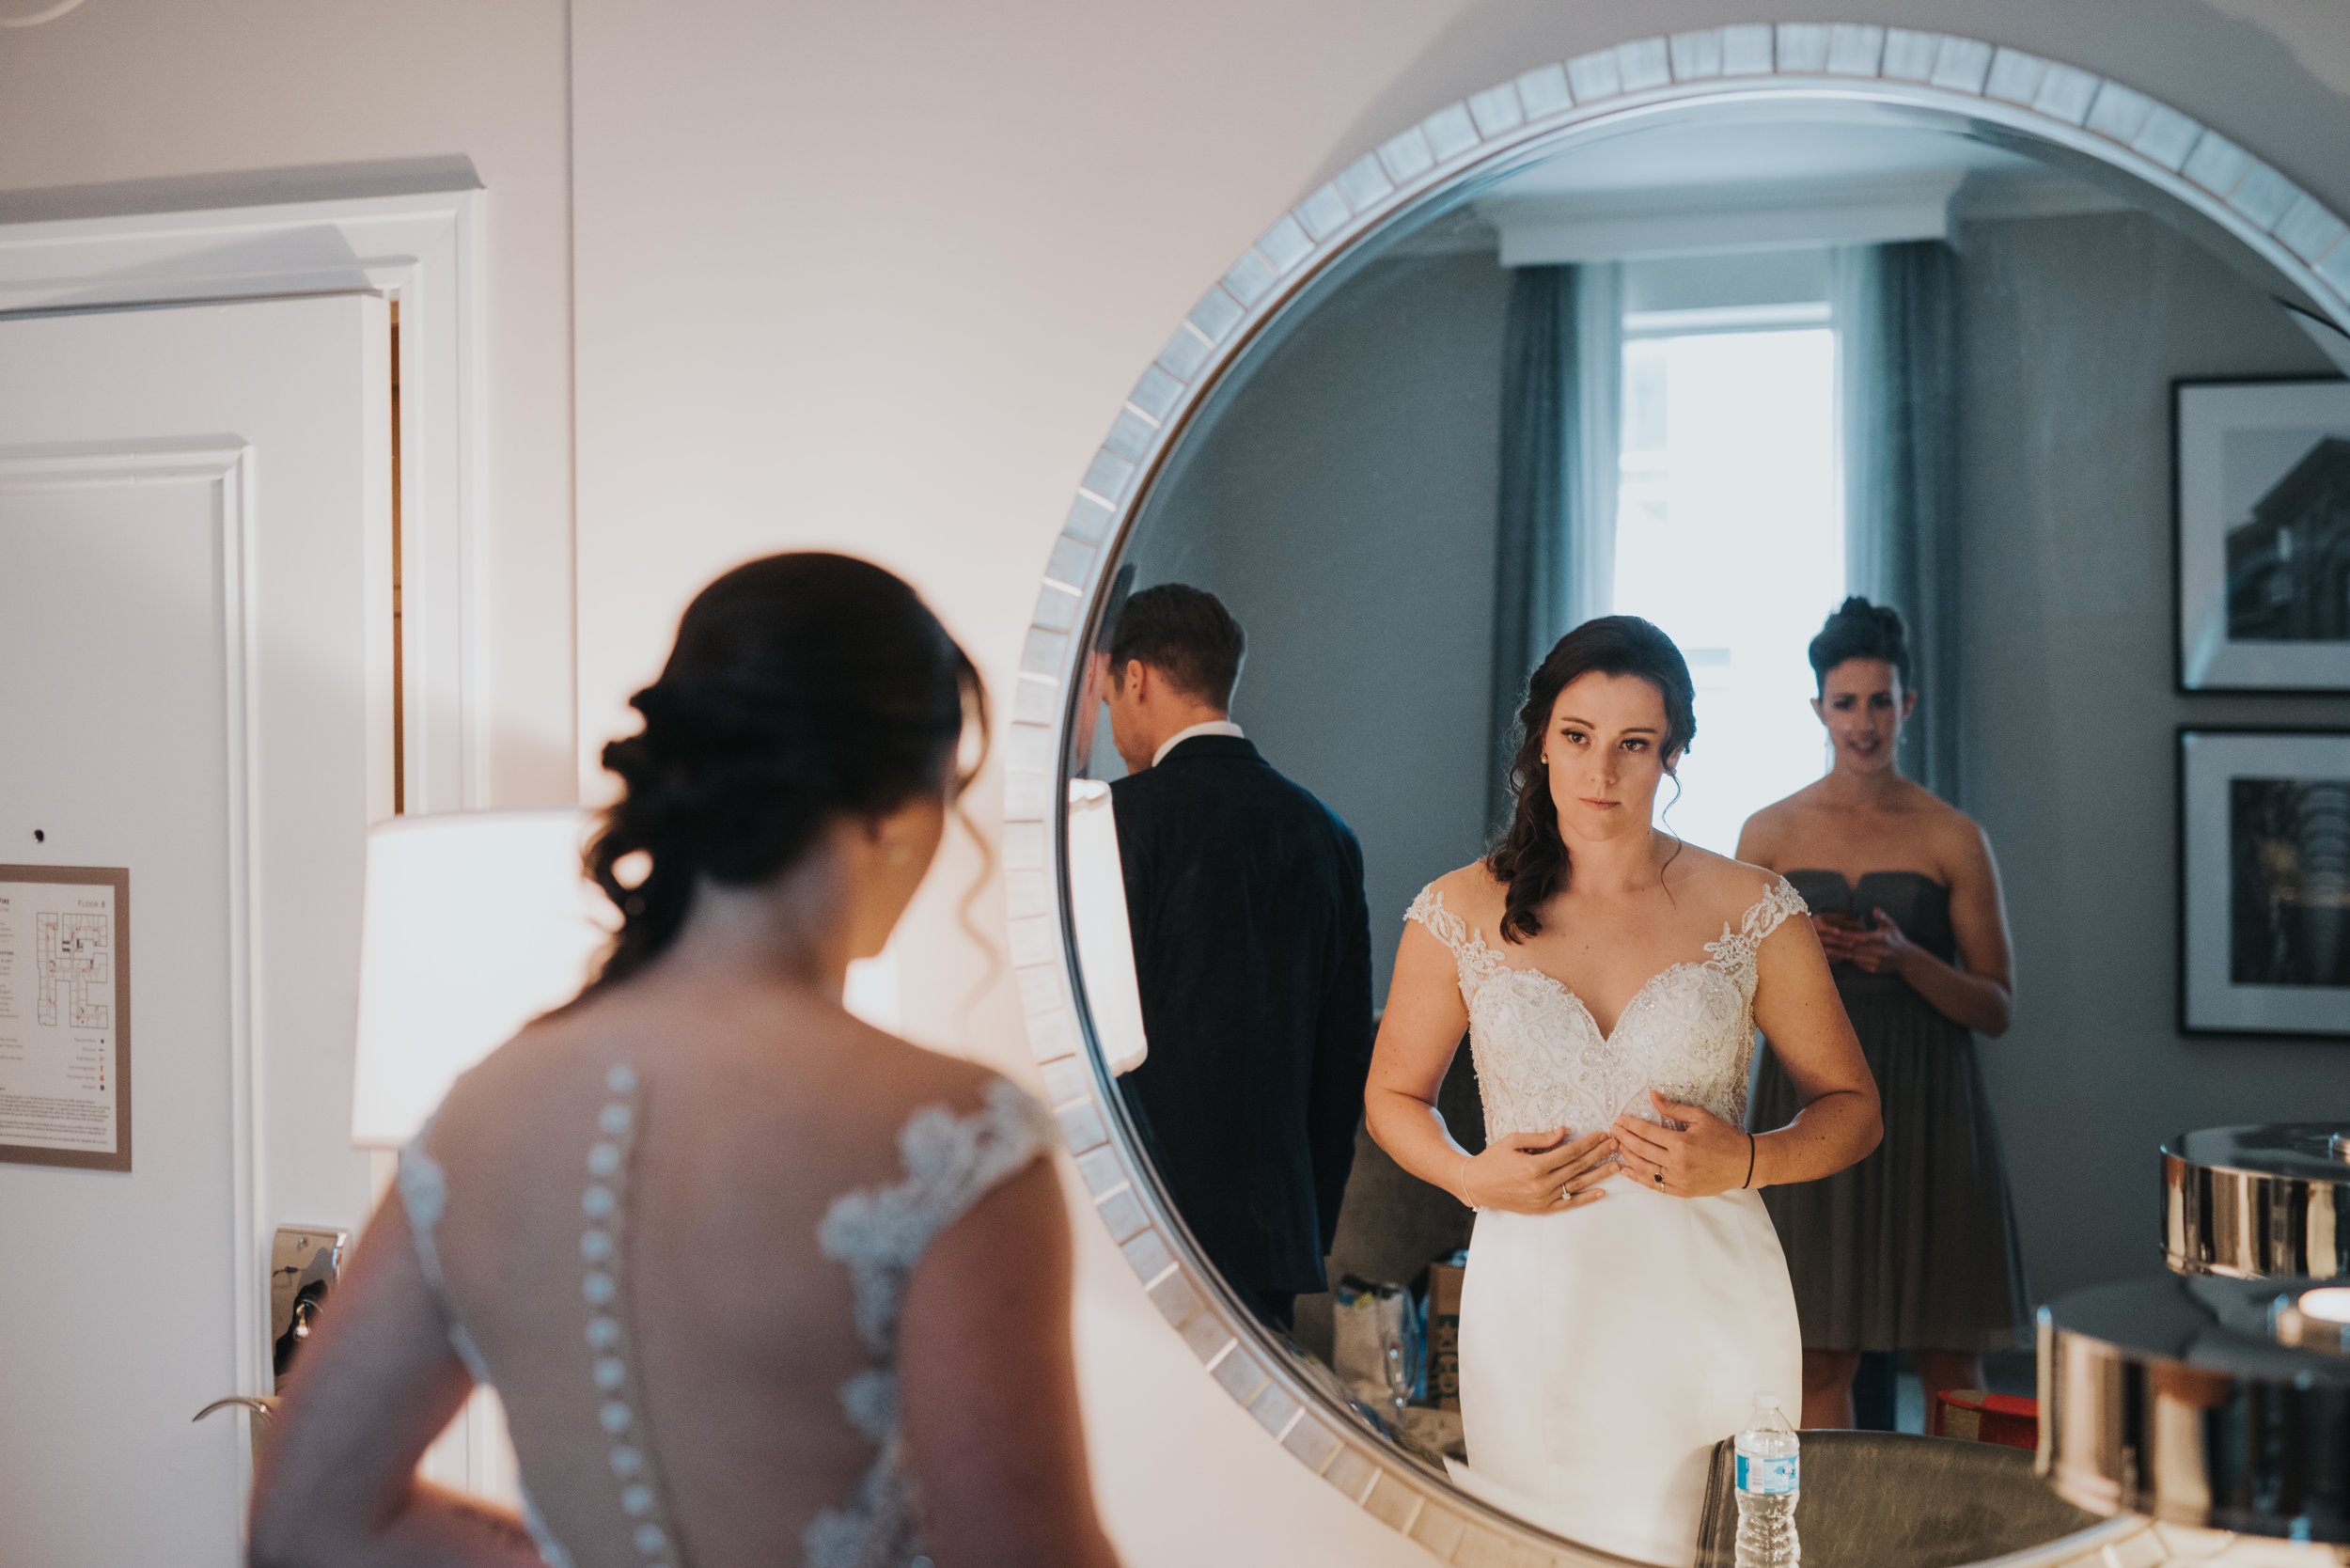 bride-getting-ready-pictures-toronto-same-sex-wedding-willow-and-birch-photography-documentary-wedding-photographers.jpg